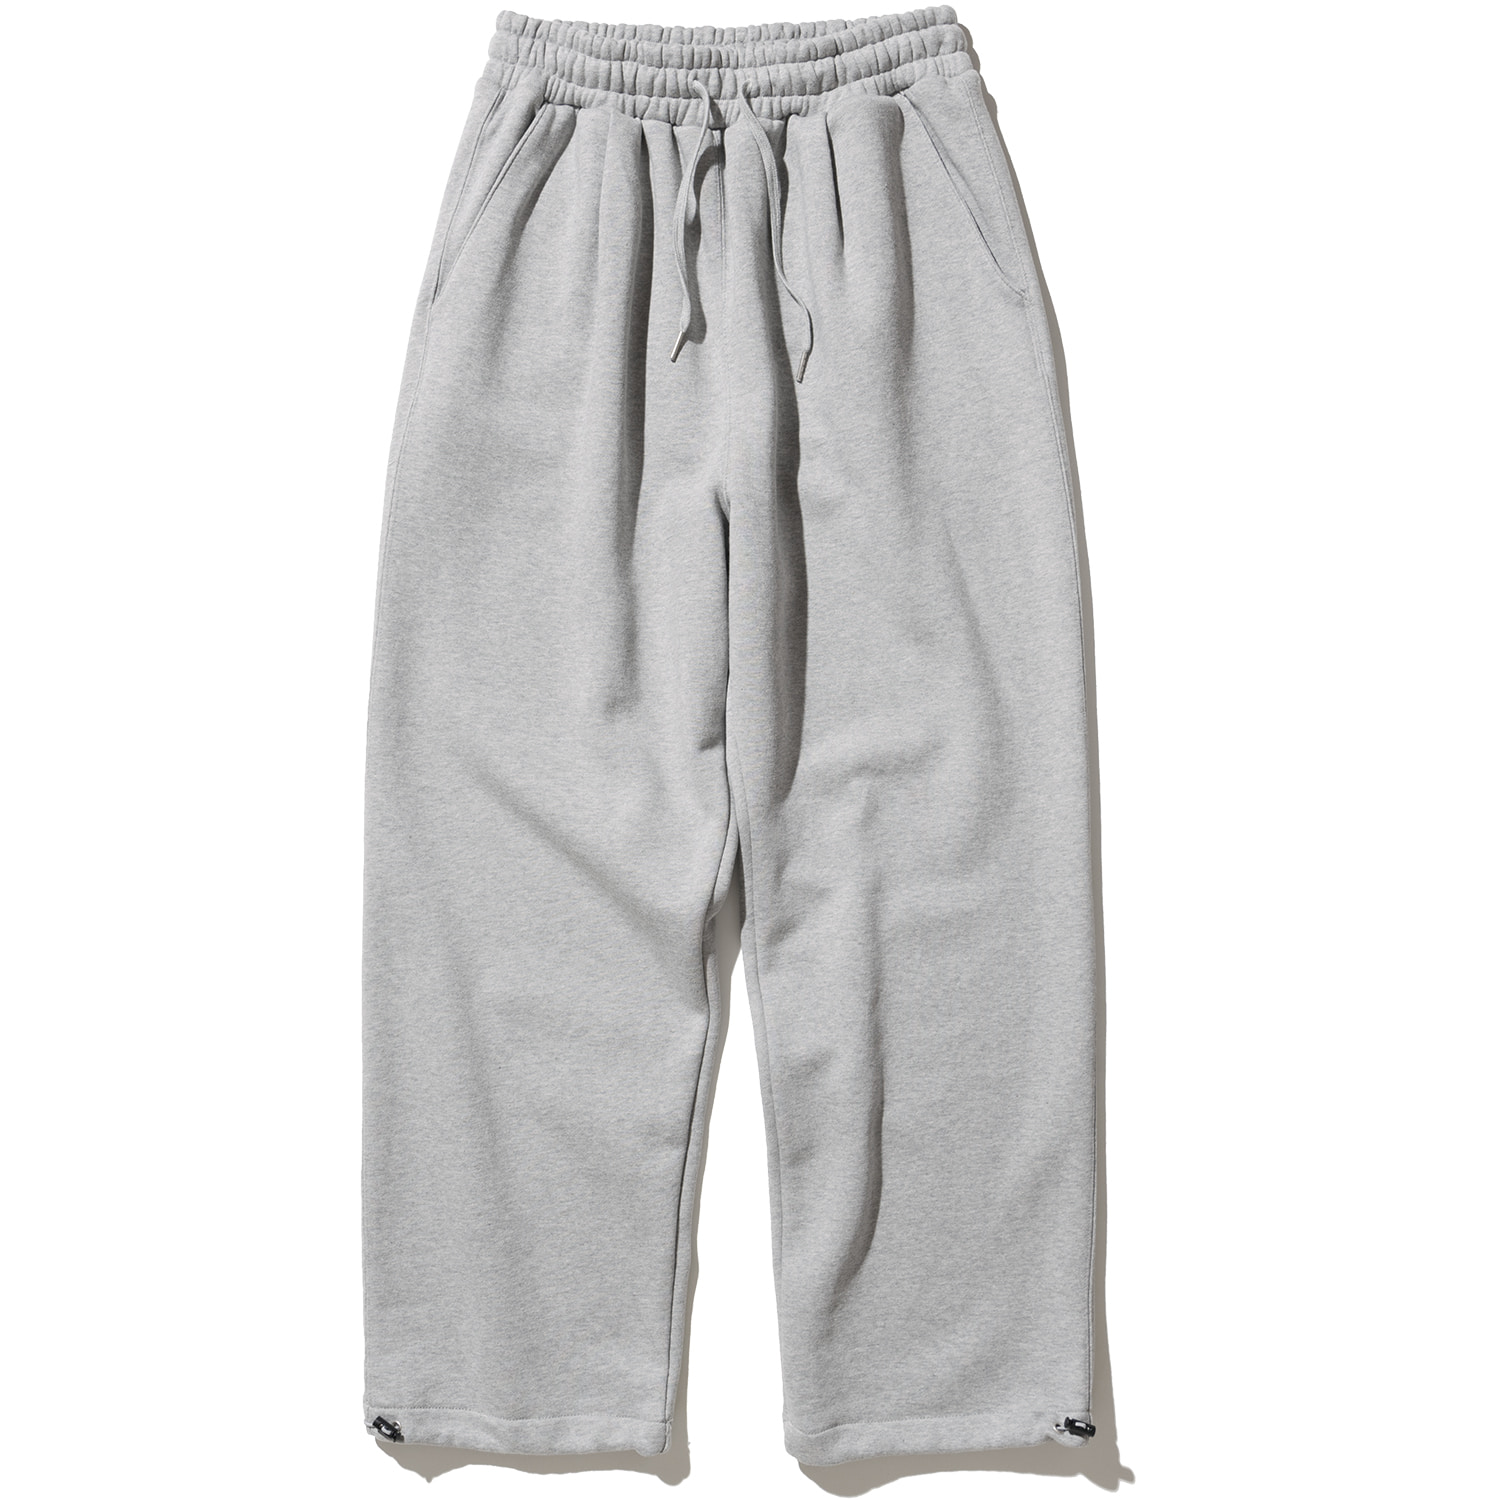 String Sweat Pants - Grey,NOT4NERD